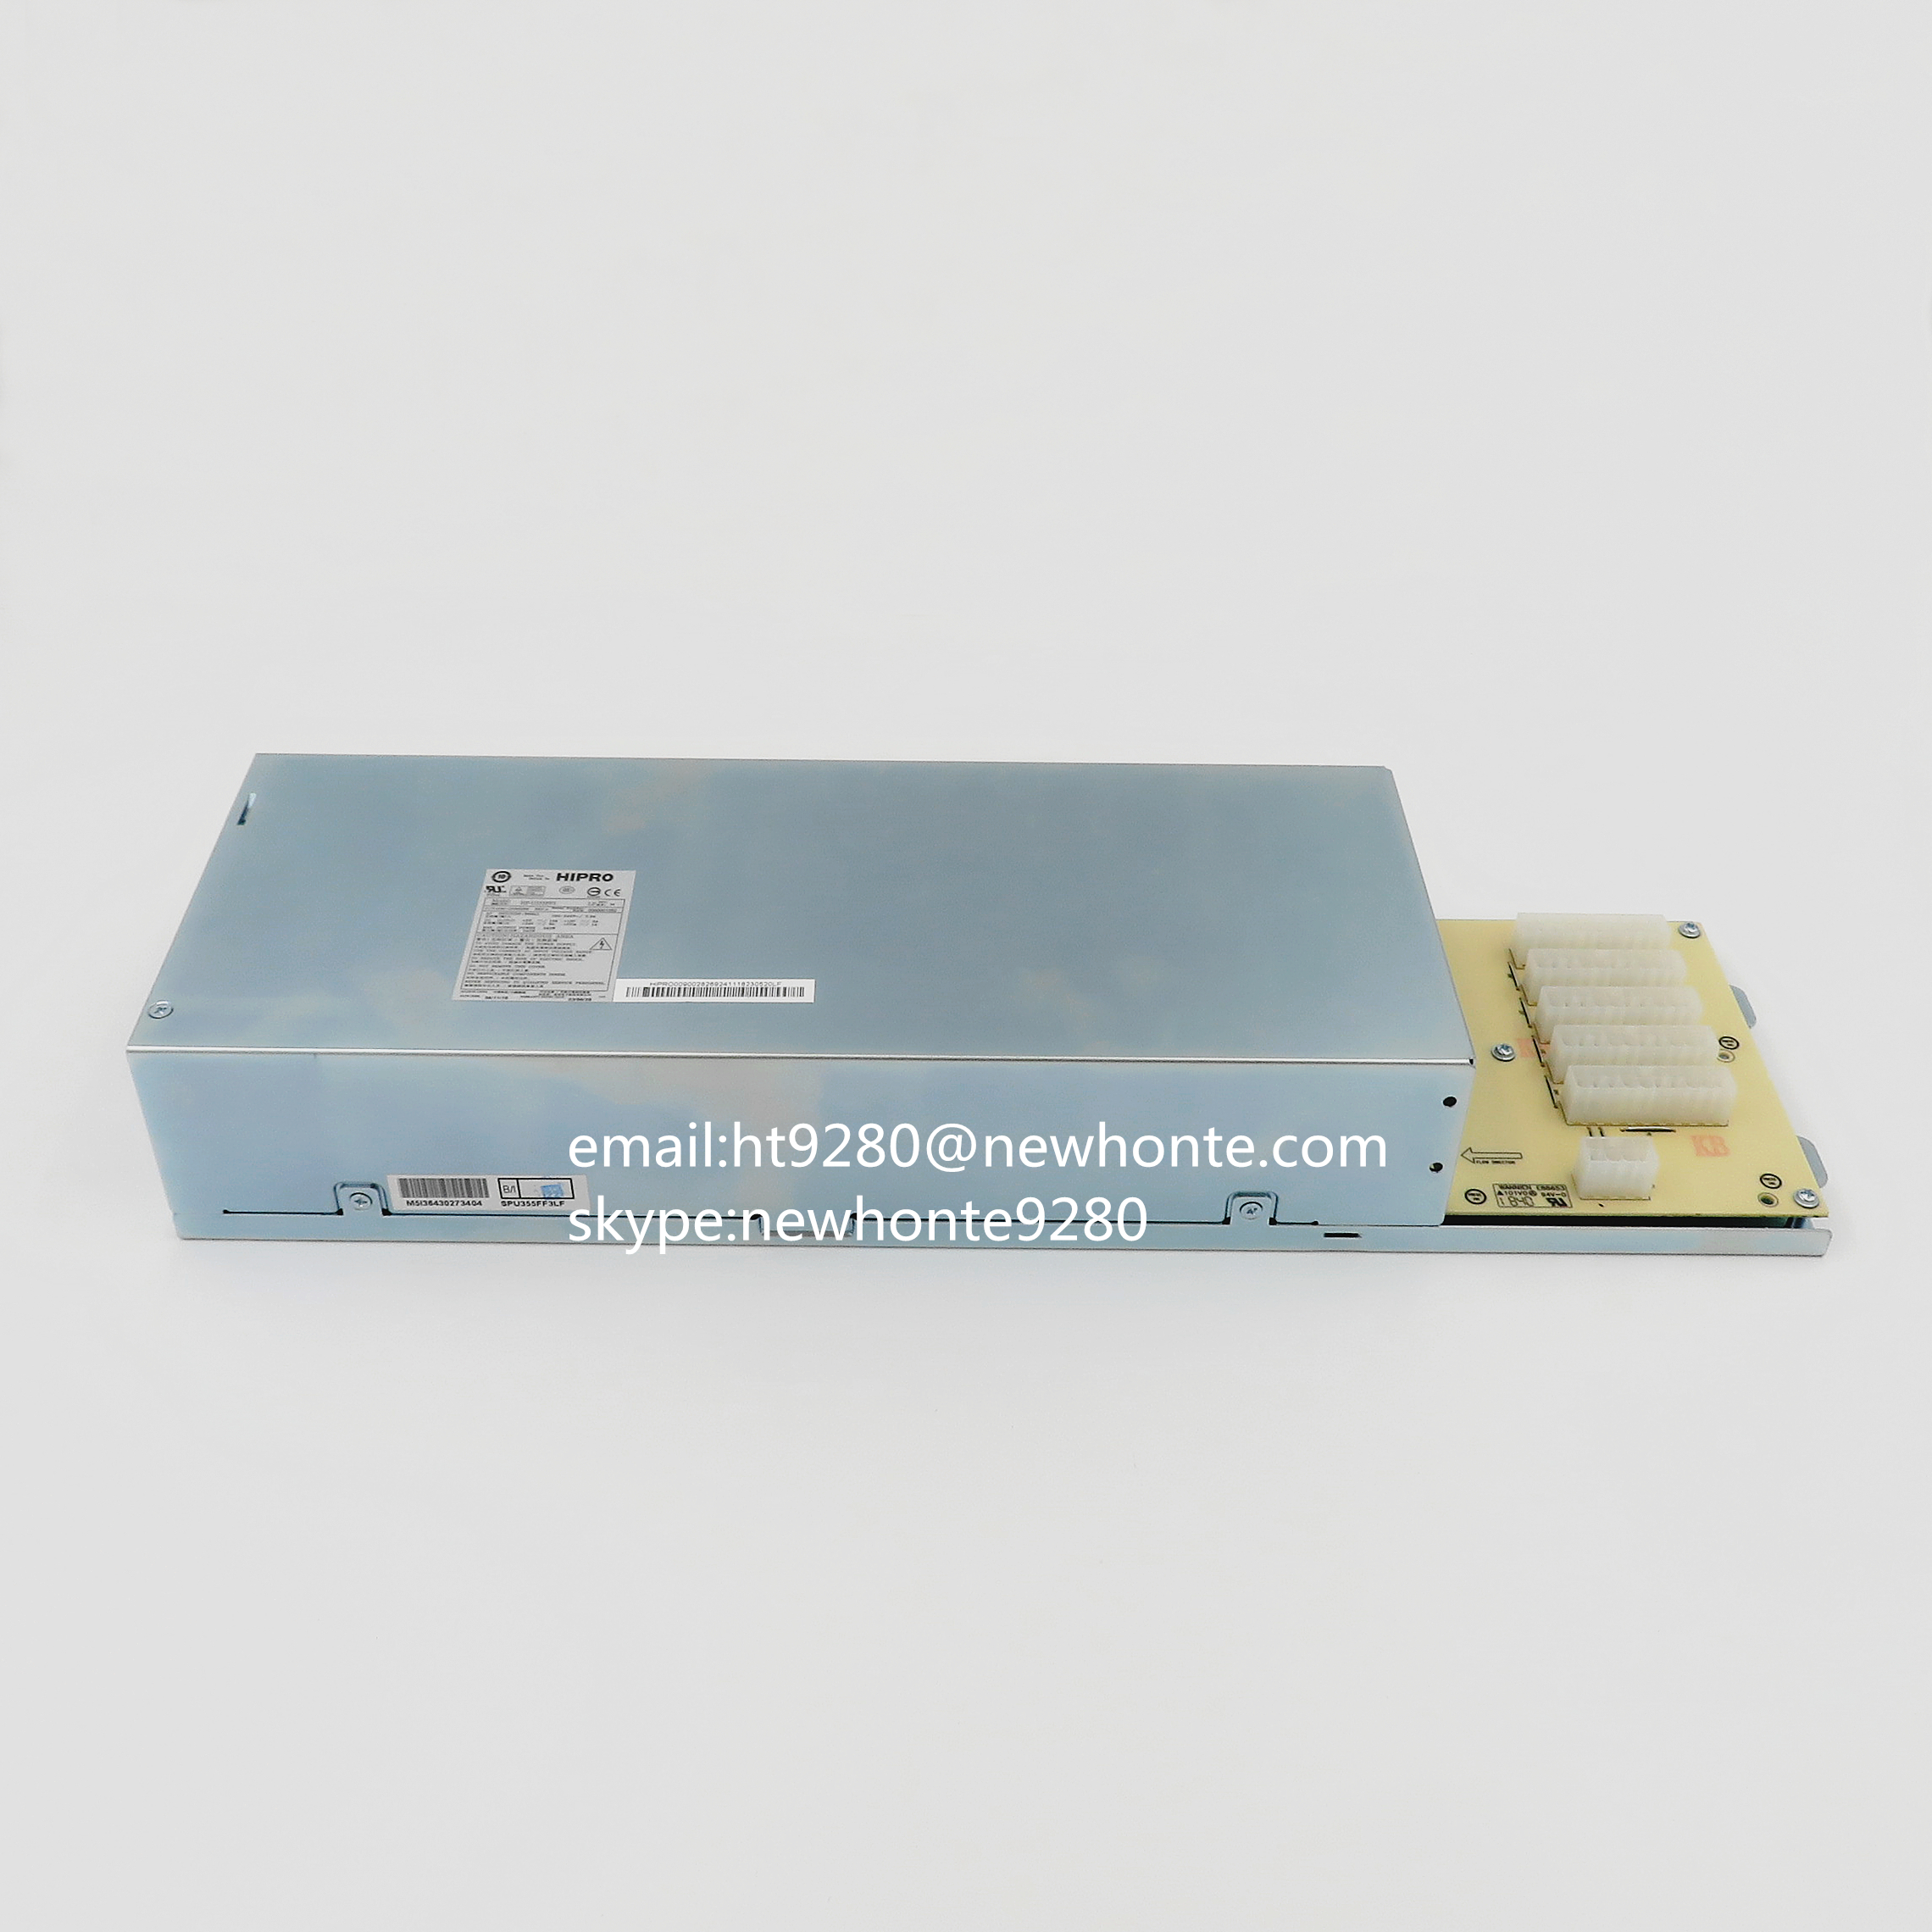 ATM part 009-0028269 power supply 343W 0090028269 fit for NCR 66XX